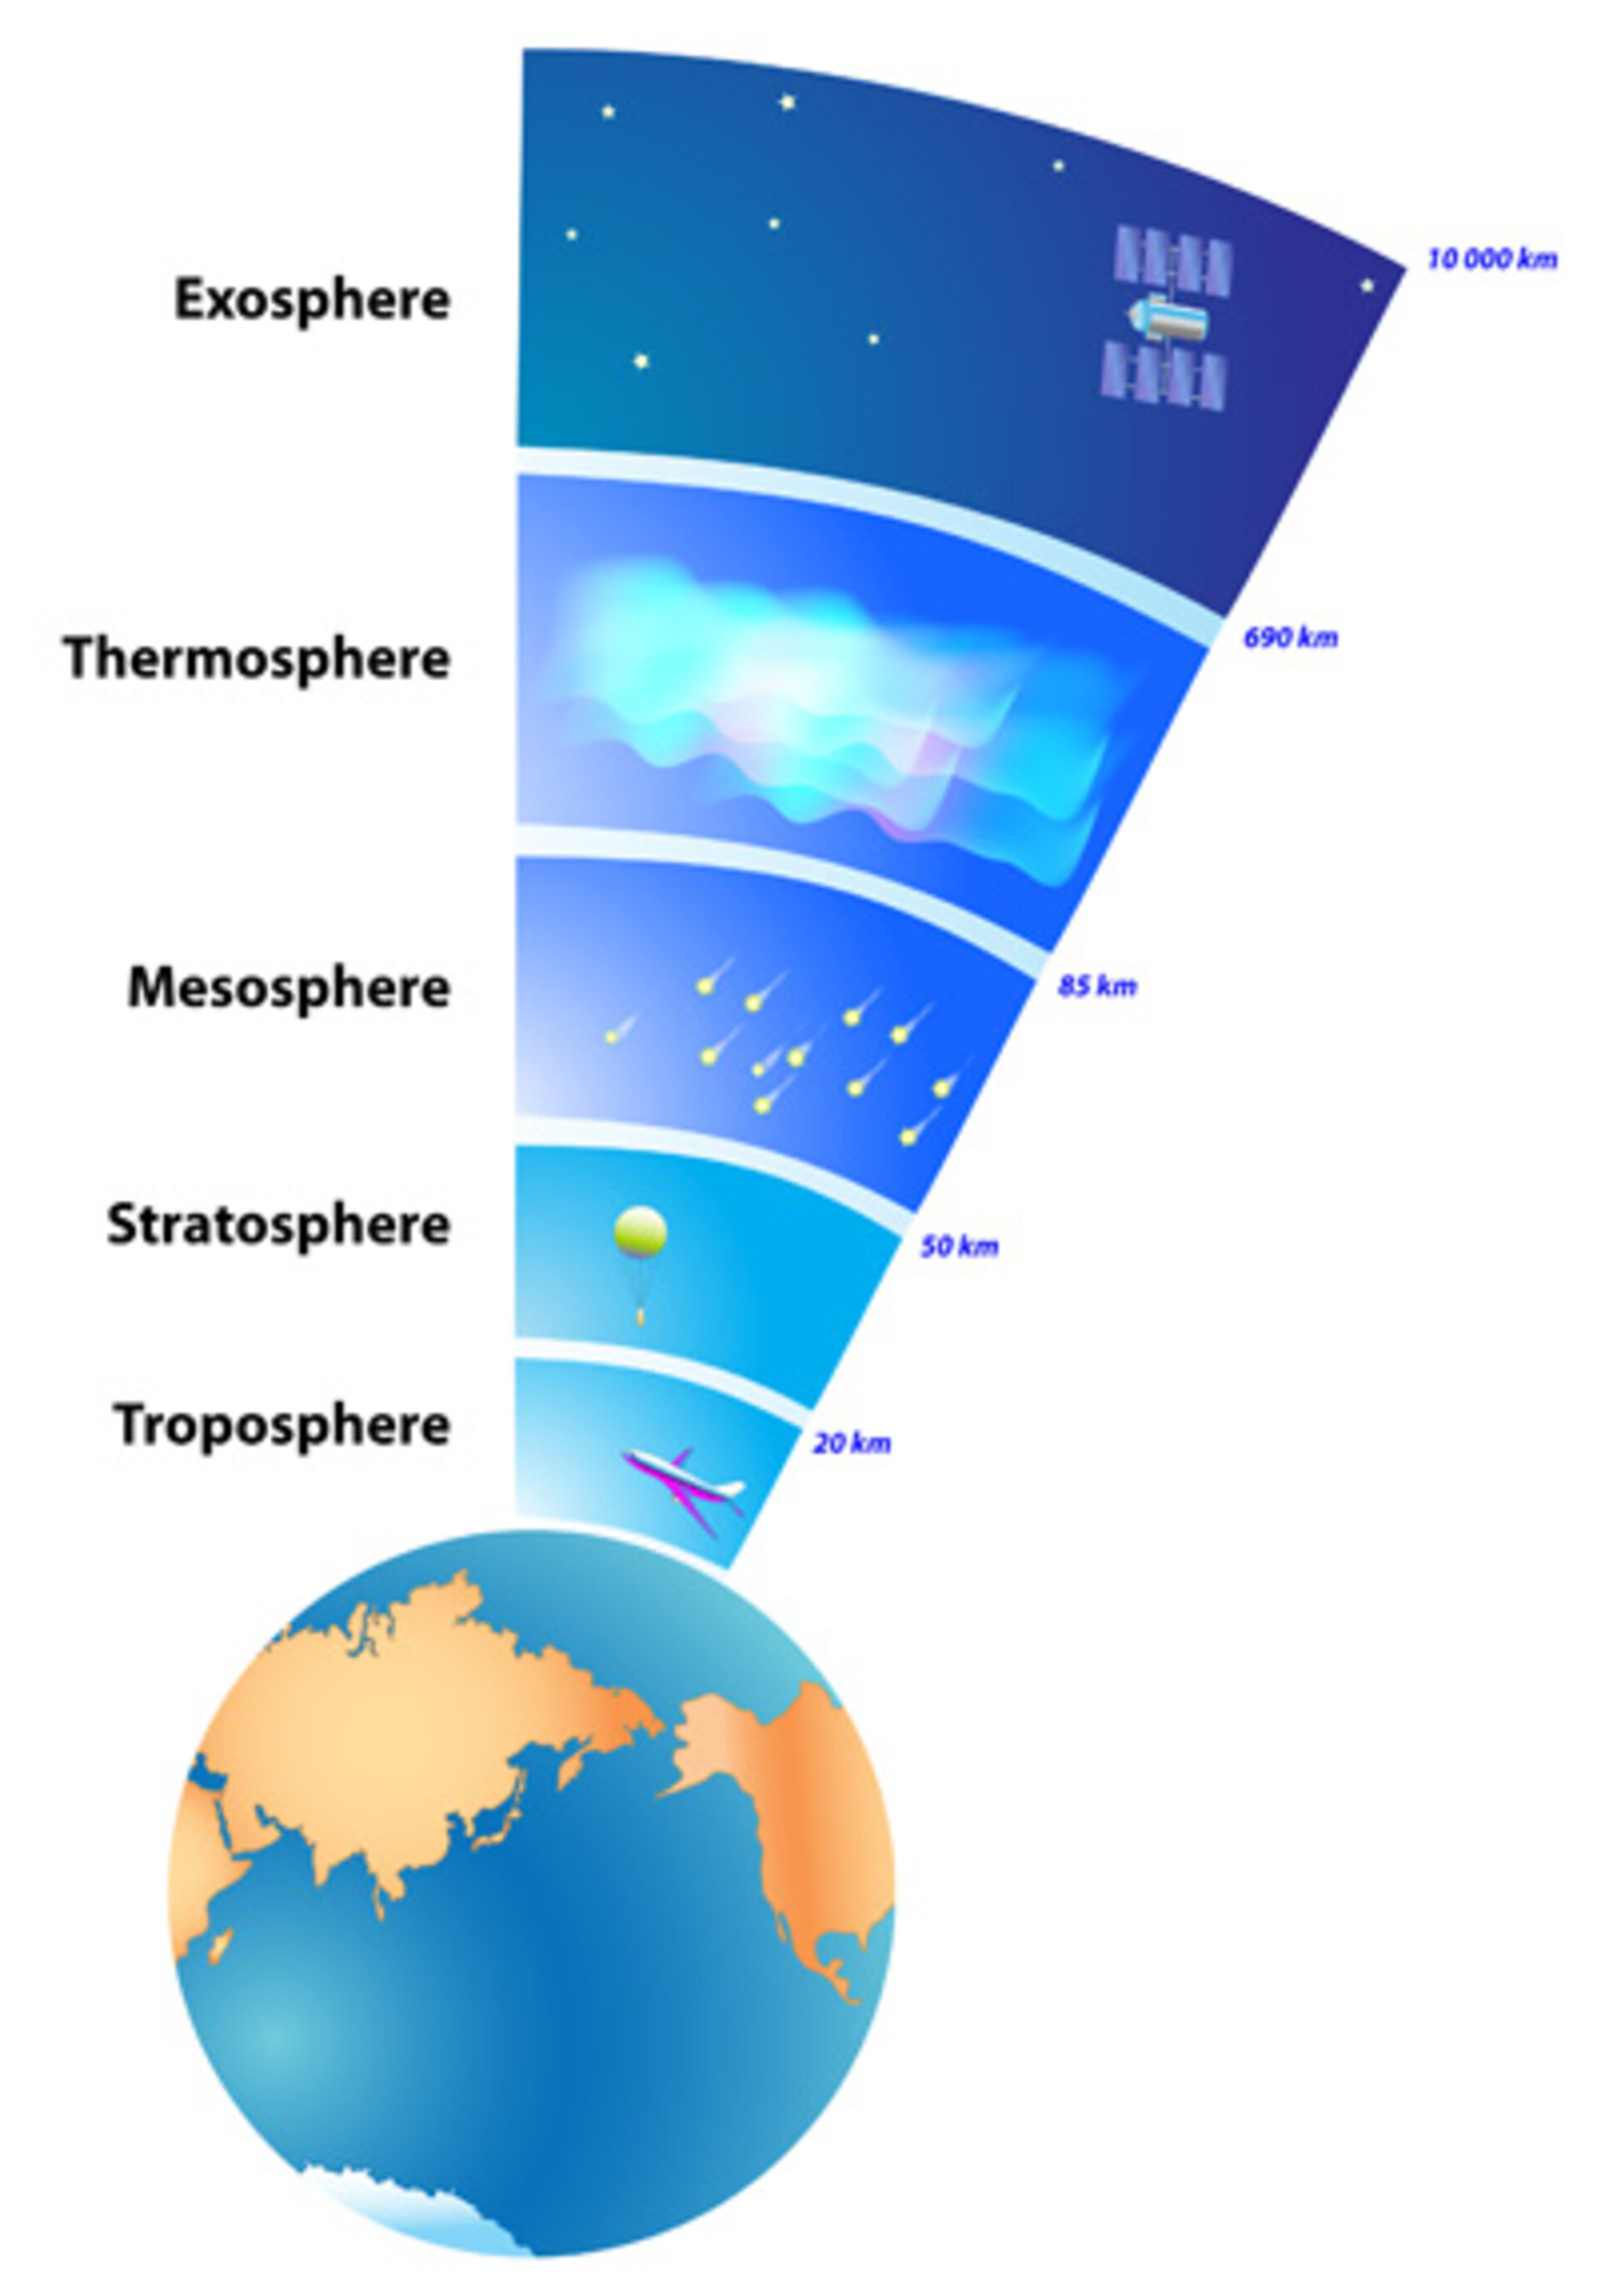 ESA - Layers of Earth's atmosphere